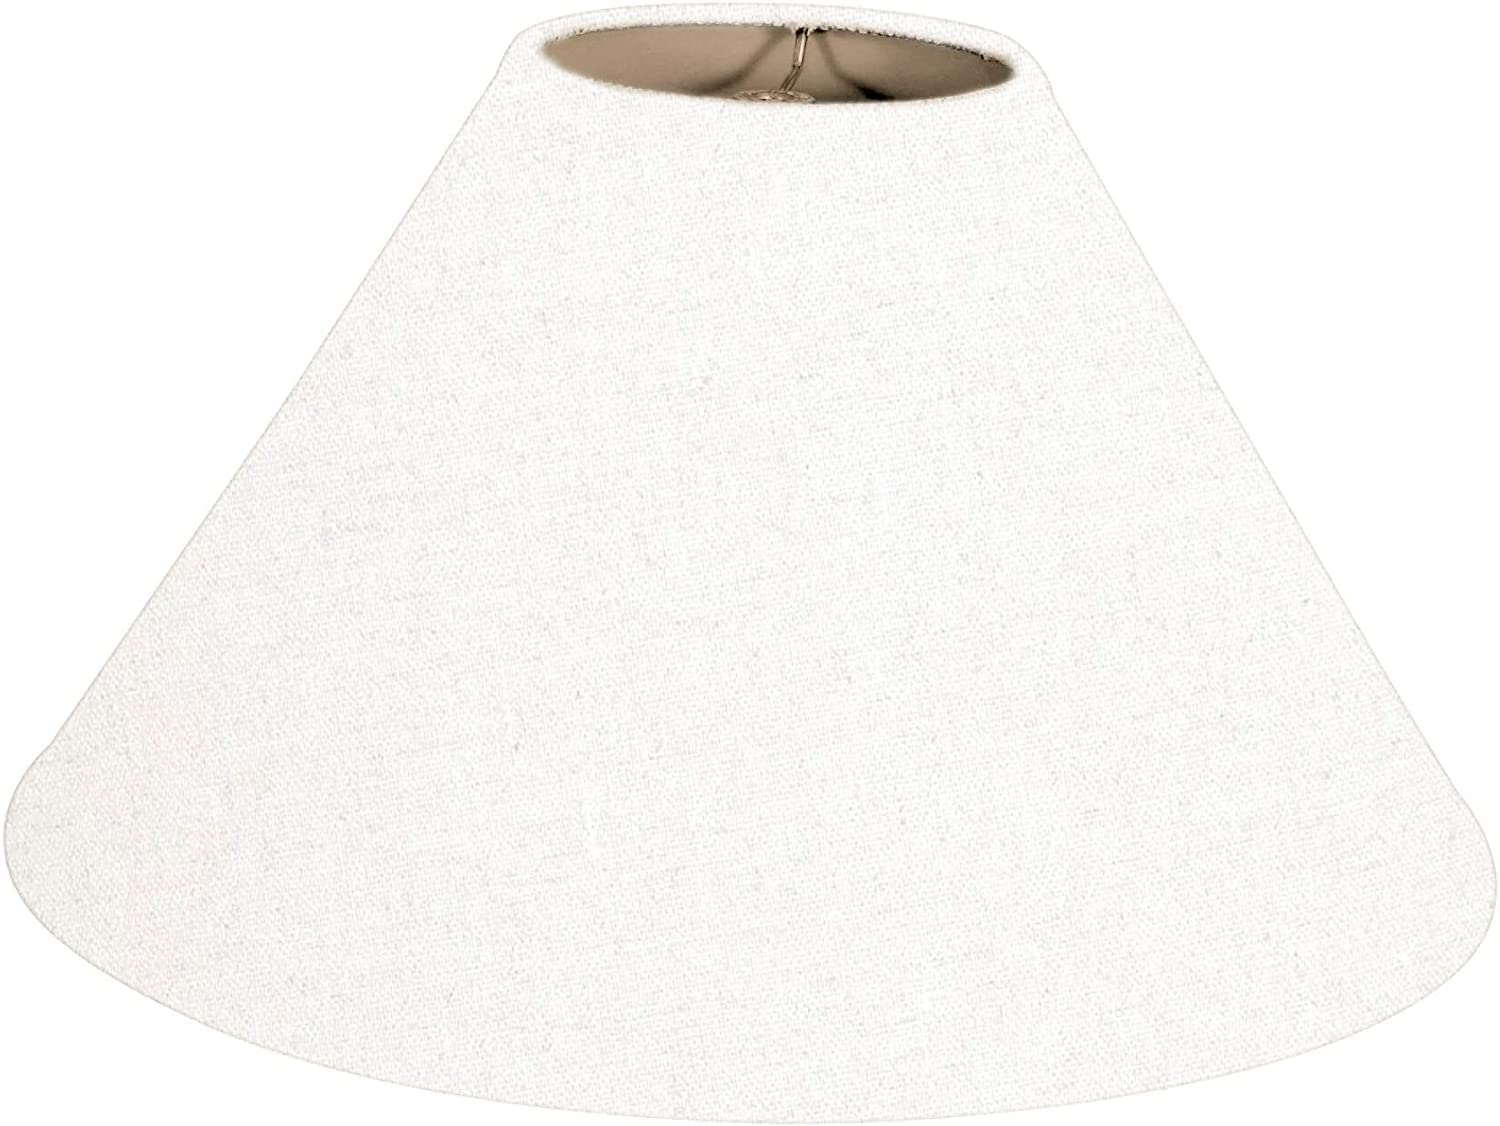 Royal Designs Coolie Empire low-pricing Hardback Outstanding White Linen 4. Shade Lamp